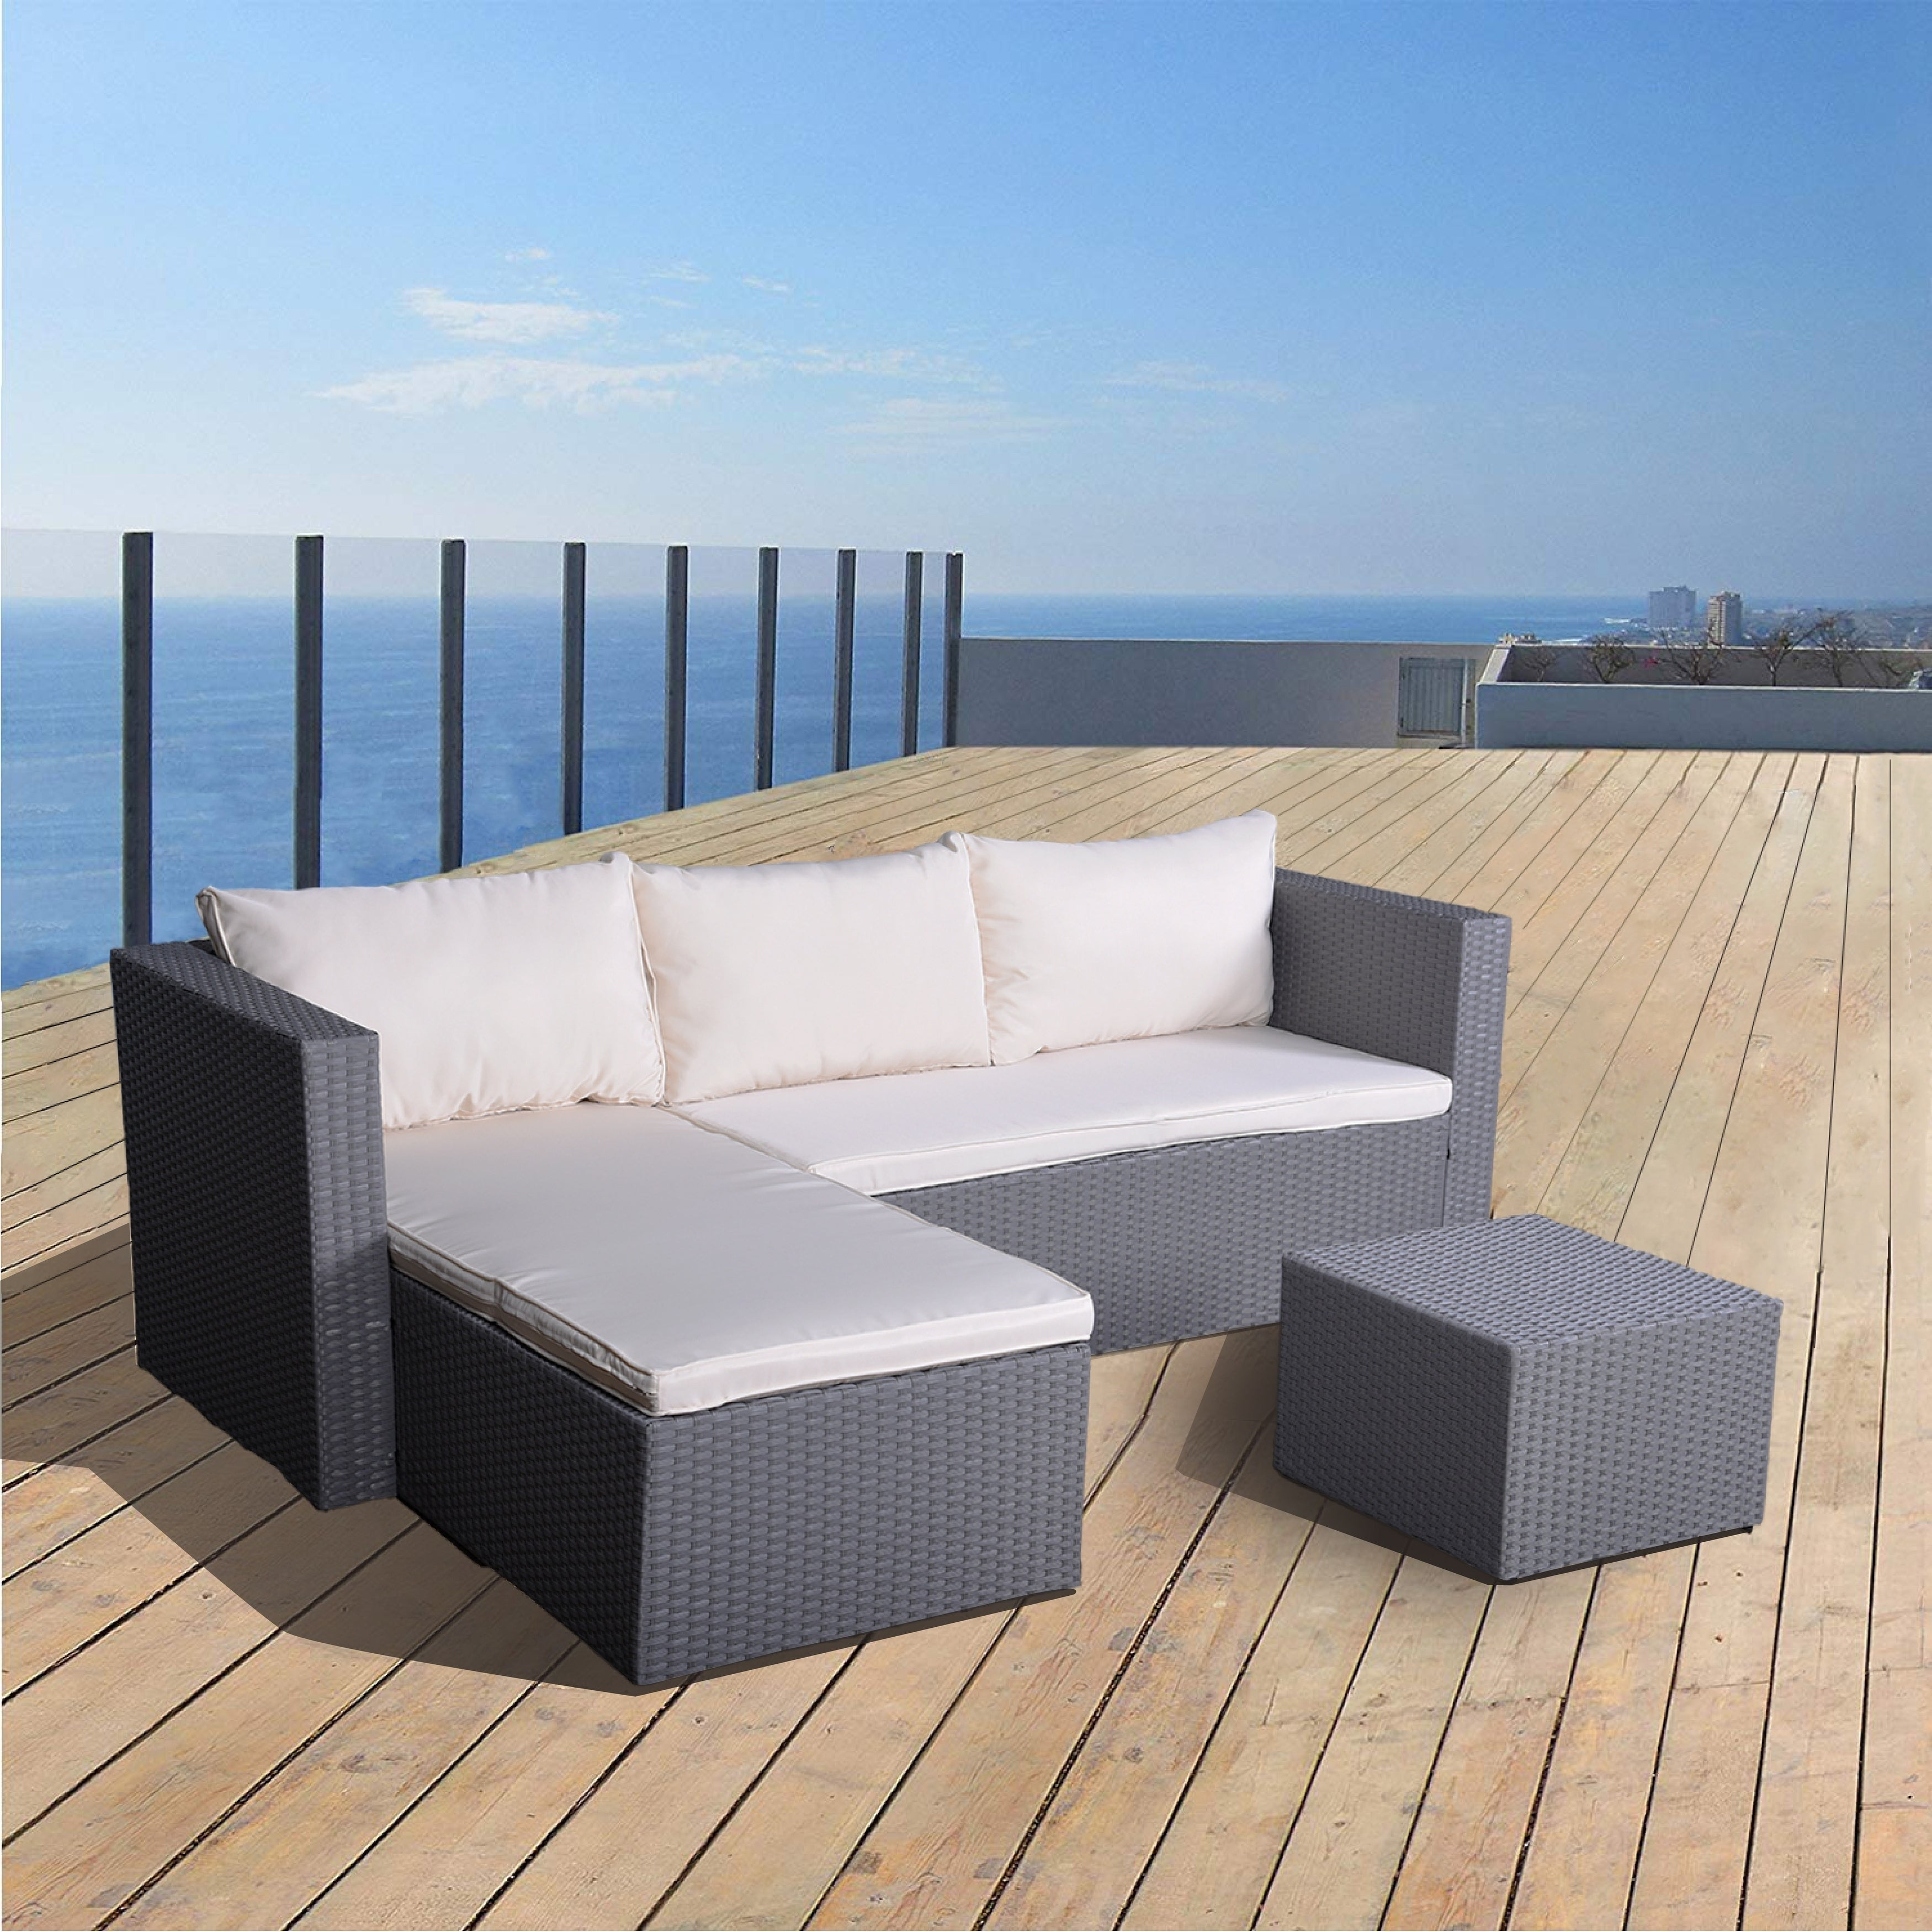 Enjoyable Ids White 3 Pieces Rattan Patio Chaise Lounge Set With Coffee Table Beatyapartments Chair Design Images Beatyapartmentscom